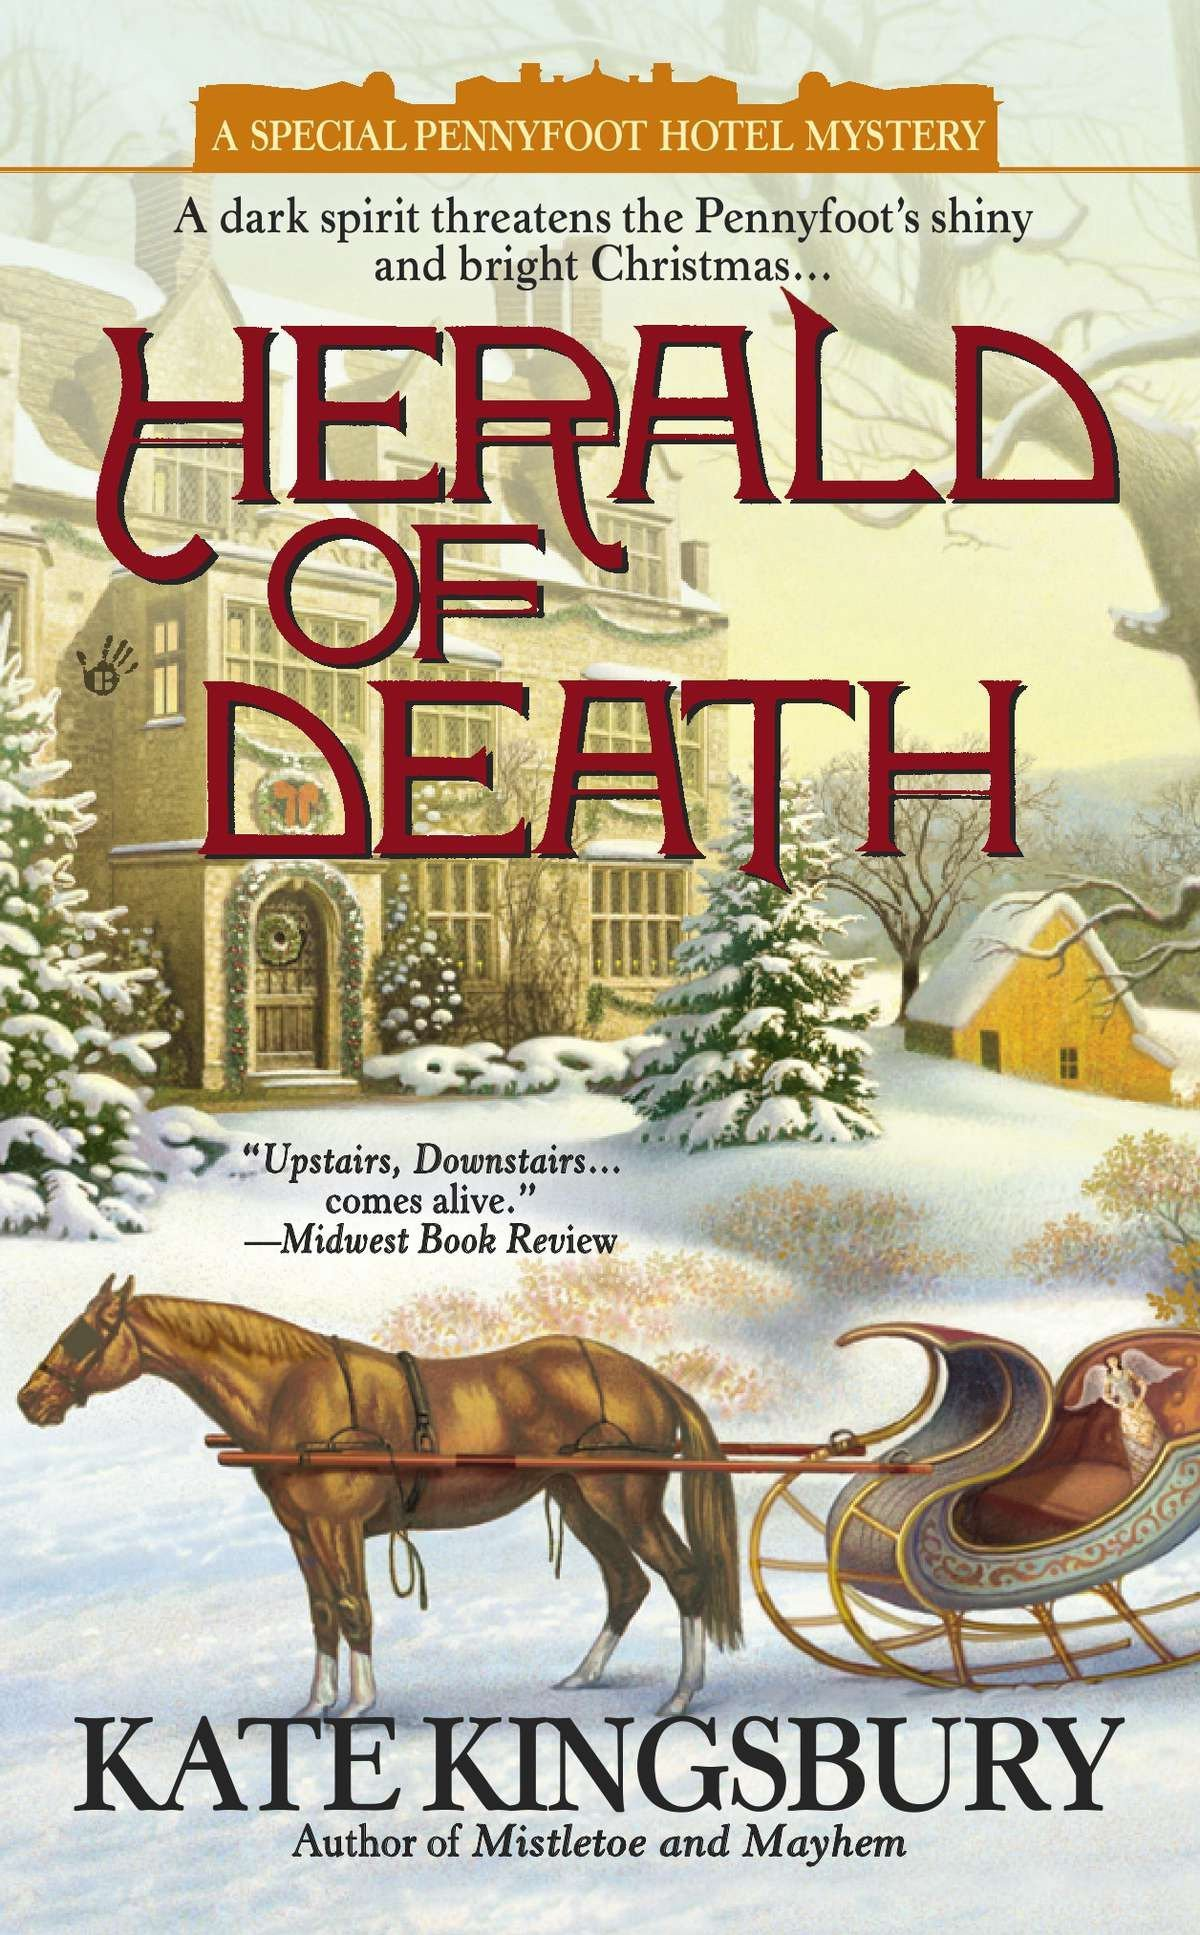 Herald of Death (A Special Pennyfoot Hotel Myst) PDF